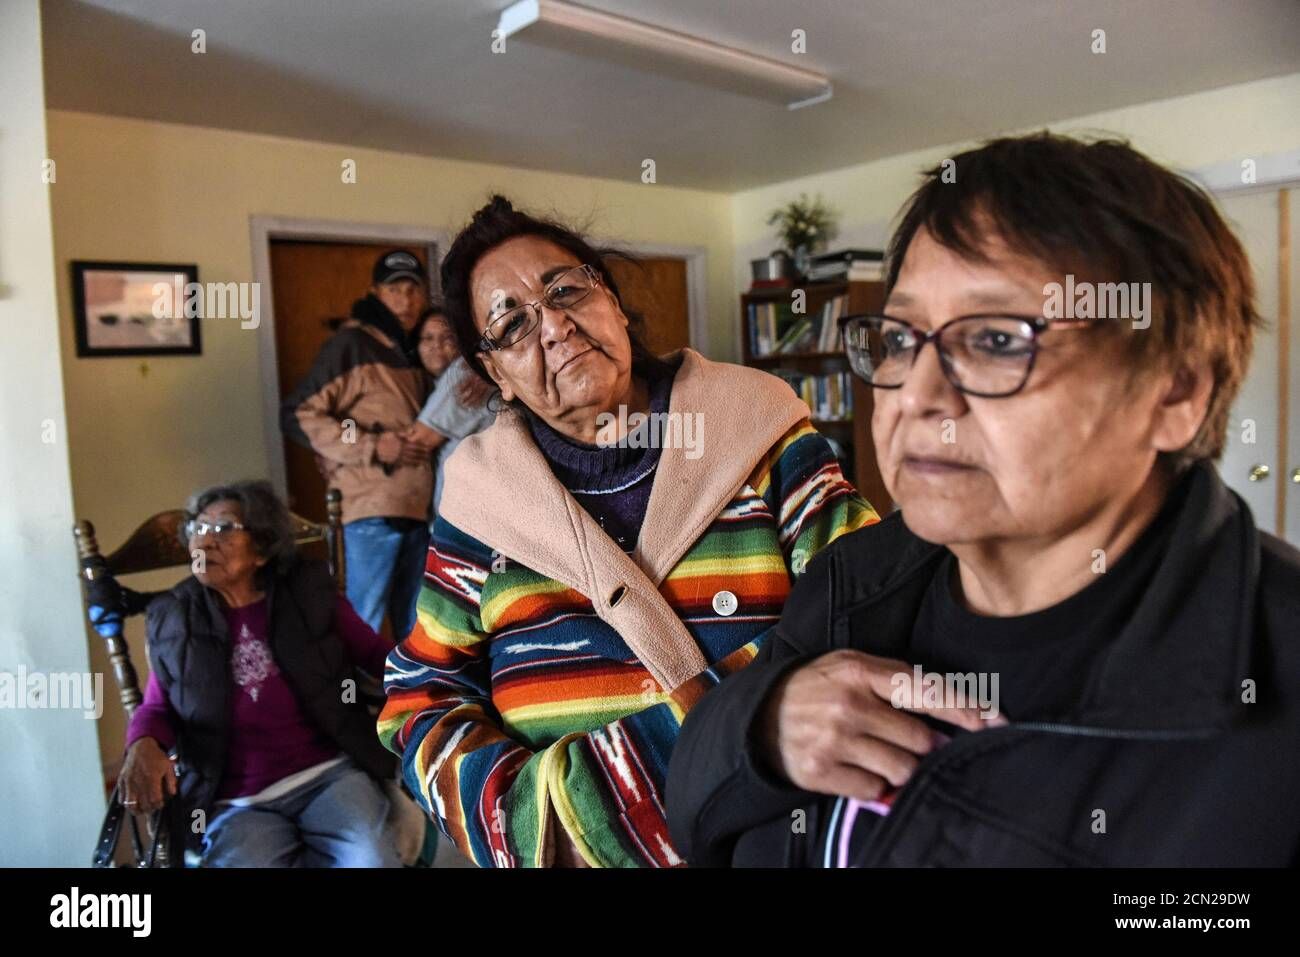 Descendant of the Lakotas killed at the Wounded Knee massacre gather at a community building on the Cheyenne River reservation in Bridger, South Dakota, November 7, 2019.  REUTERS/Stephanie Keith Stock Photo